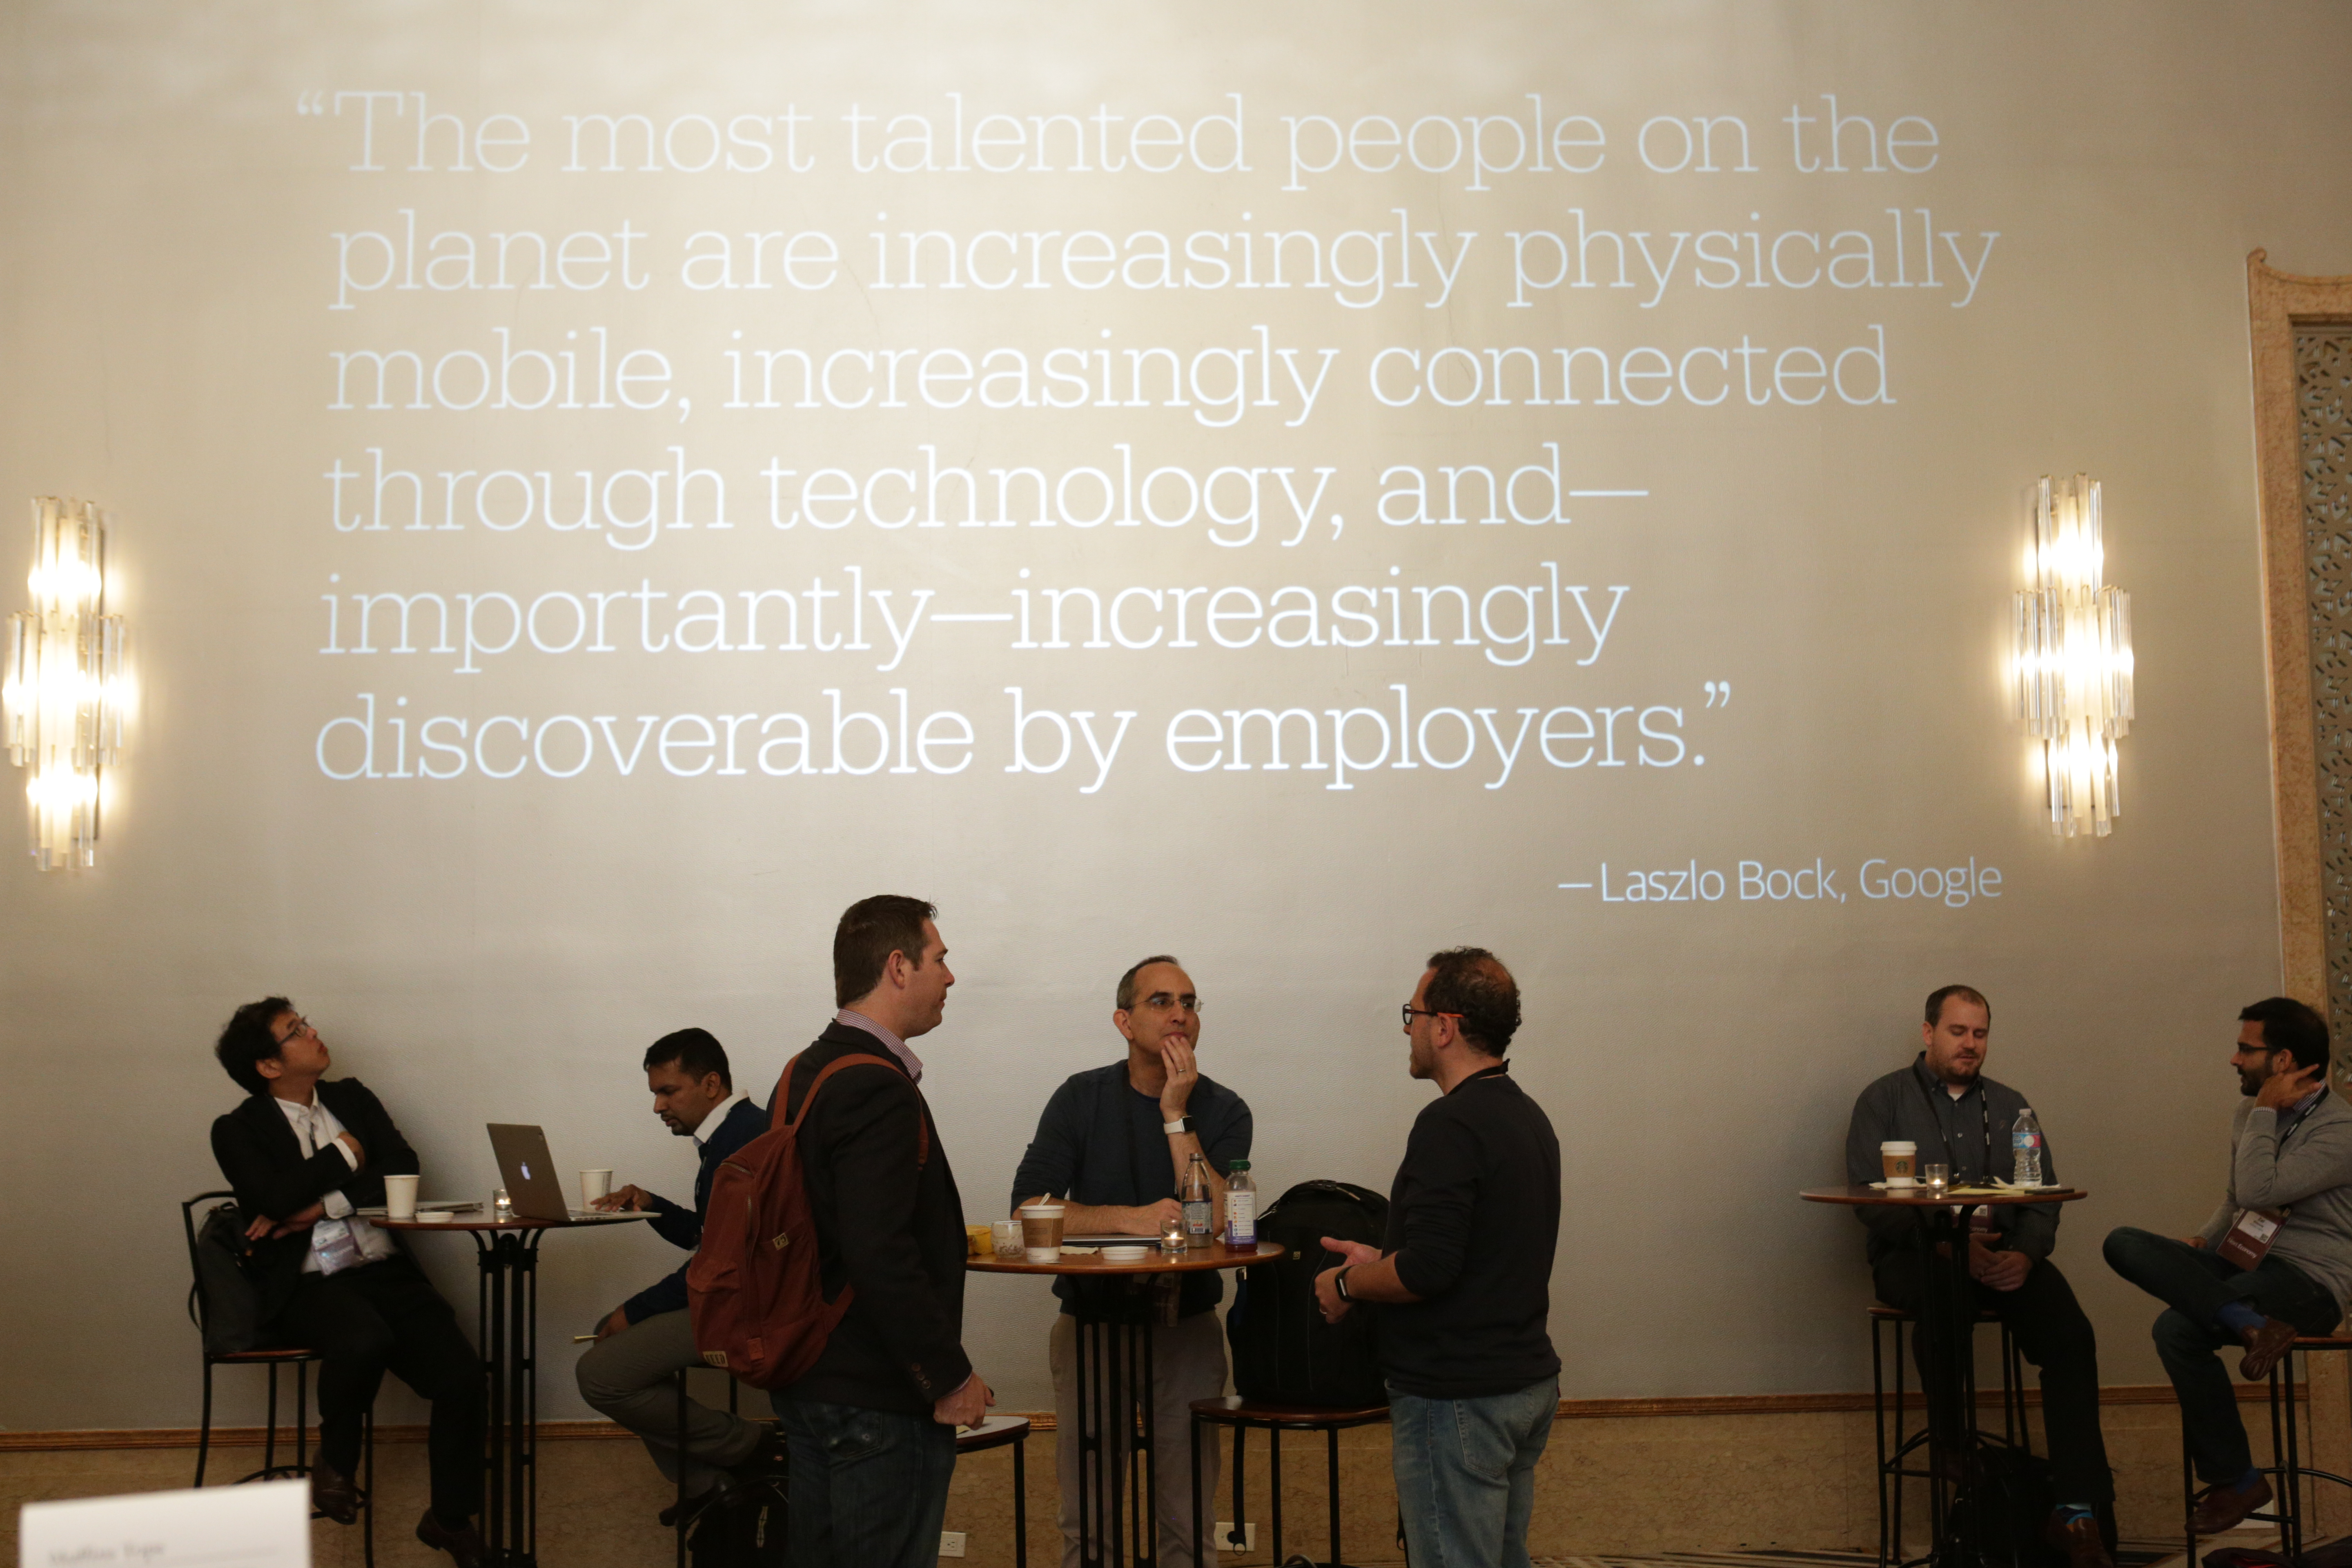 Social good in the sharing economy: Summit explores the values of our tech future